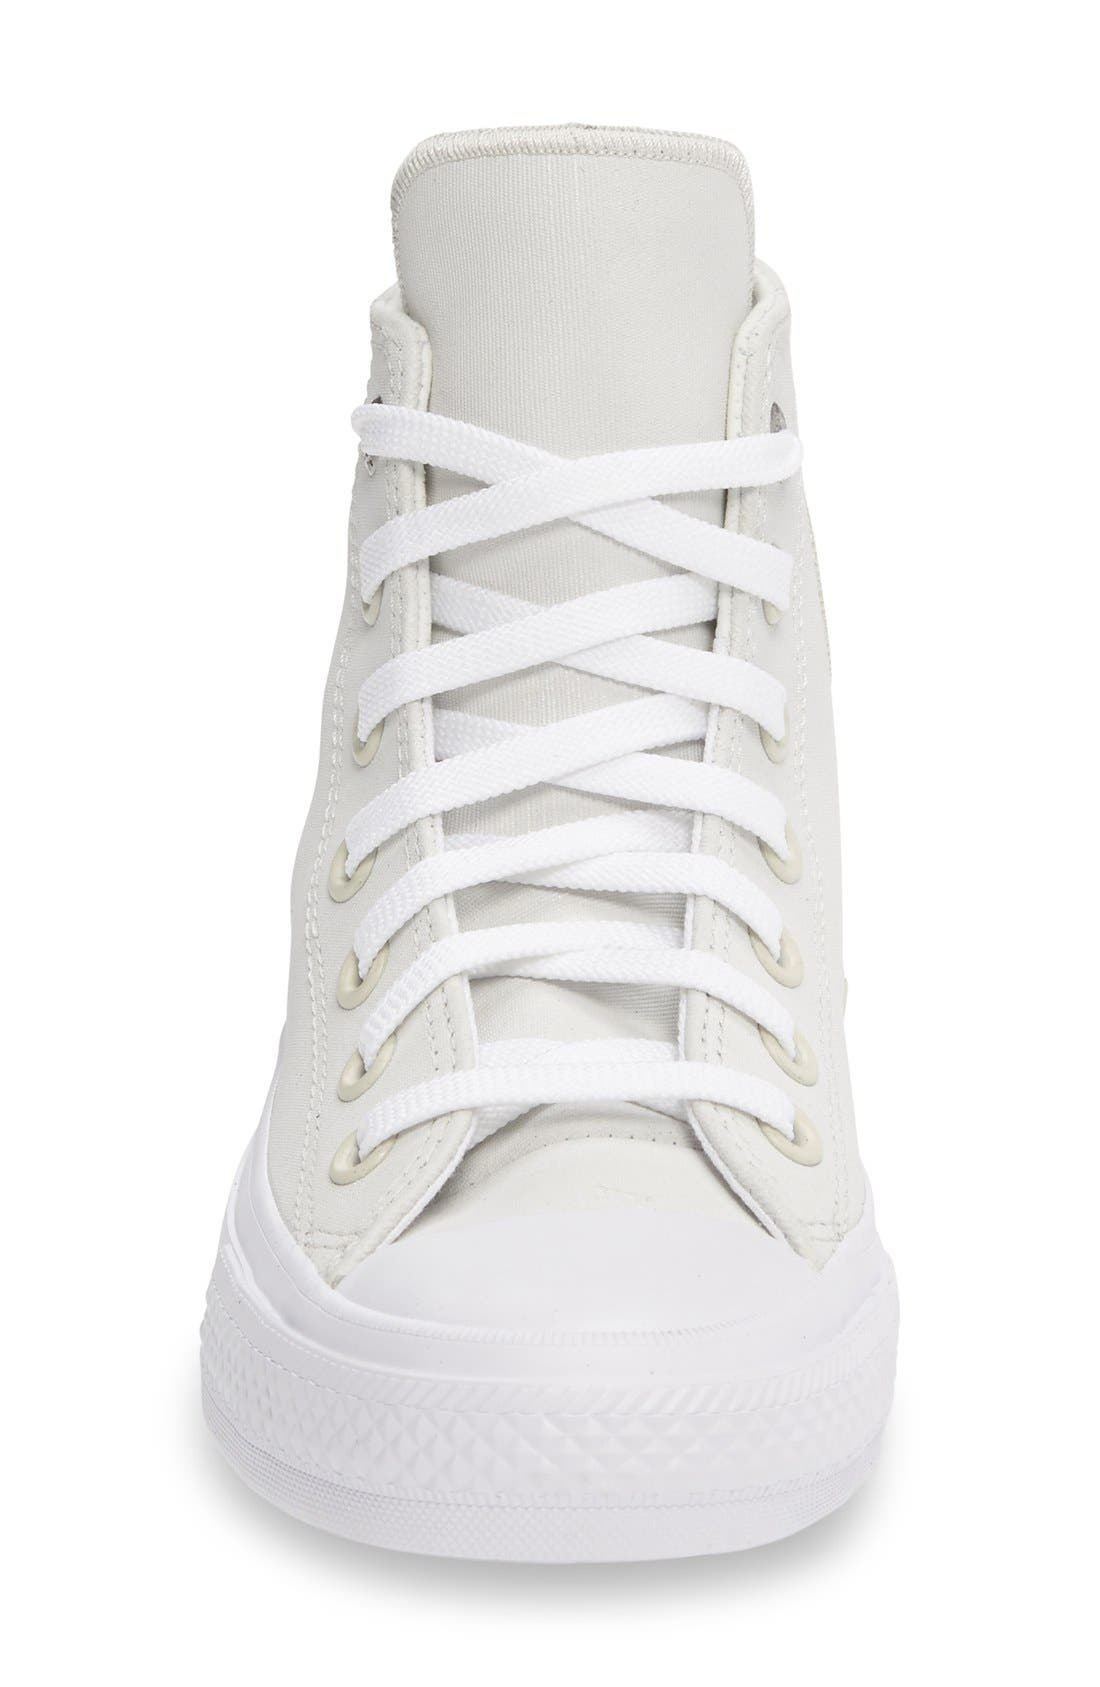 Chuck Taylor<sup>®</sup> All Star<sup>®</sup> II Two Tone High Top Sneaker,                             Alternate thumbnail 3, color,                             100